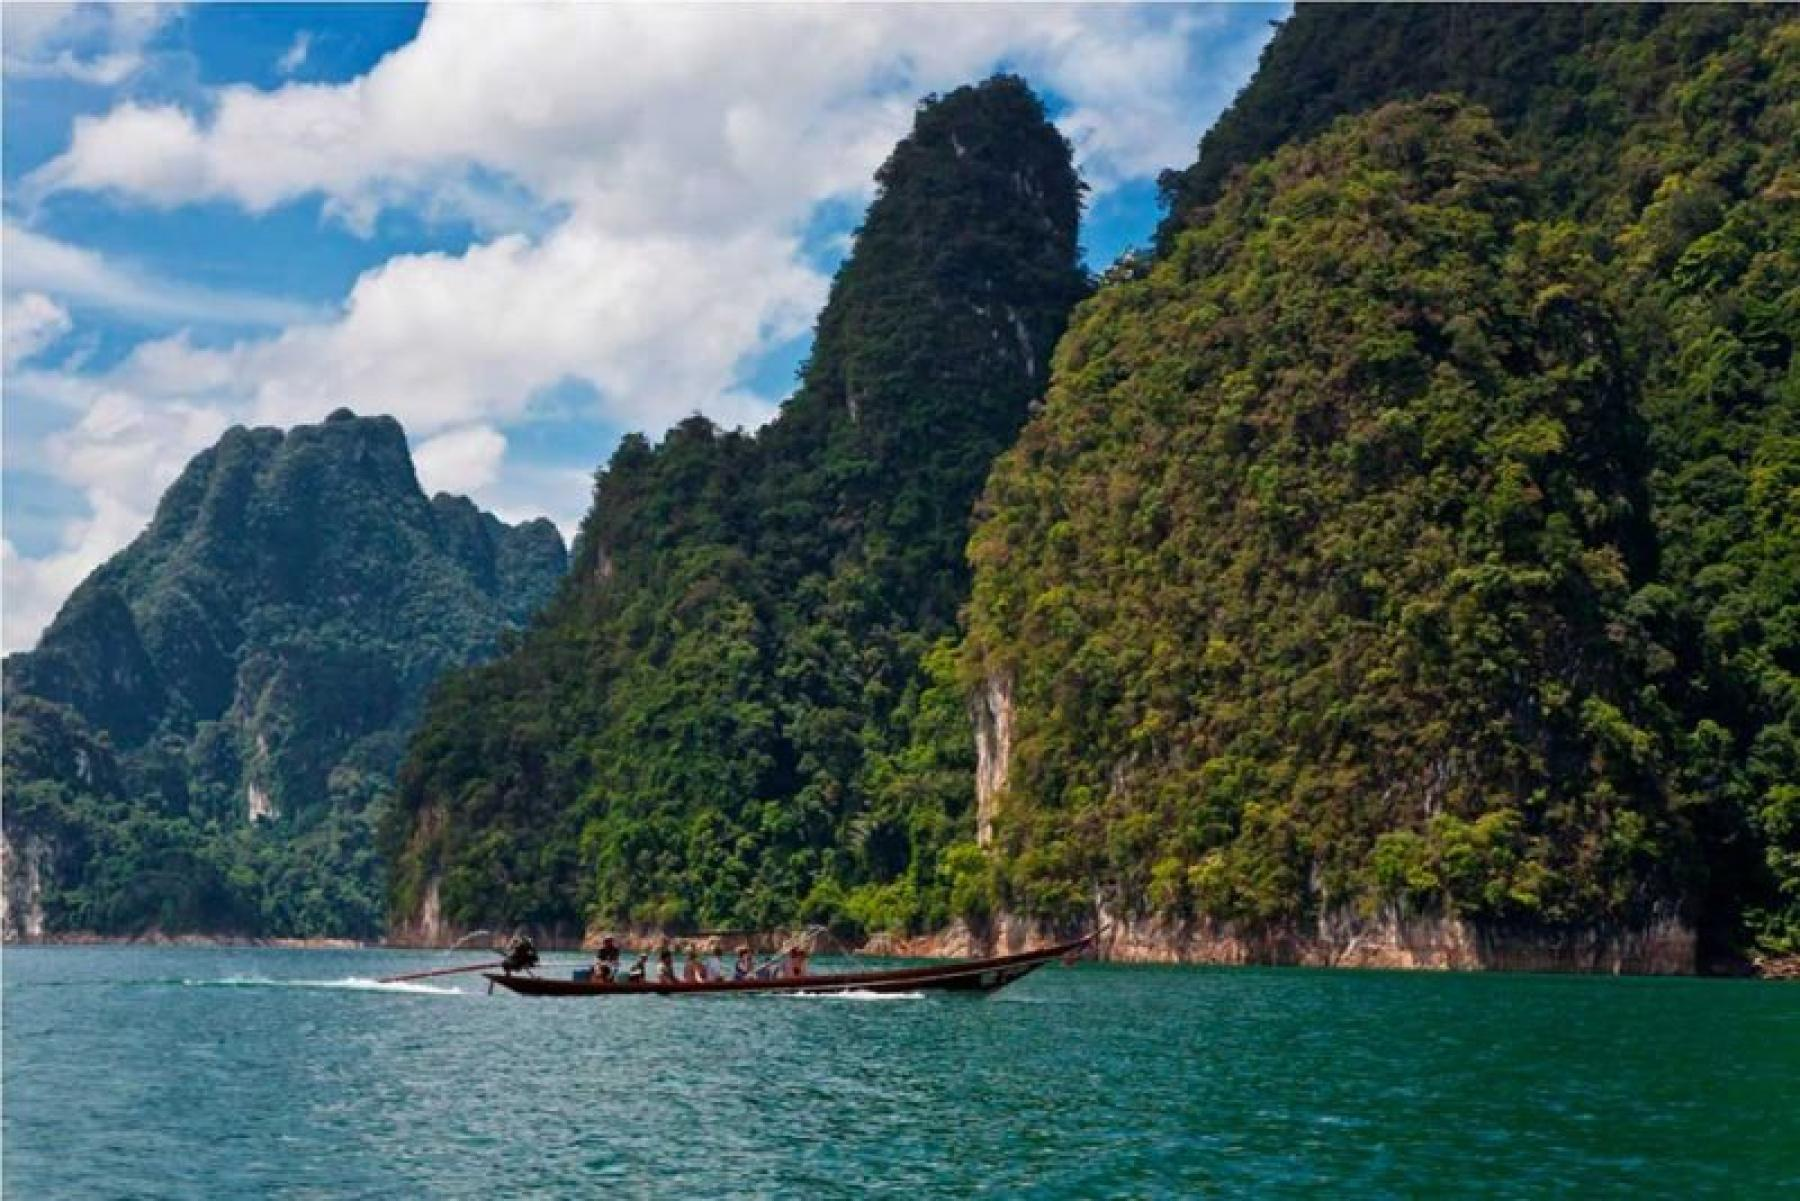 Explore one of the oldest rainforests on floating bungalows - Khao Sok starting at Khao Sok National Park, Khlong Sok, Phanom District, Surat Thani, Thailand